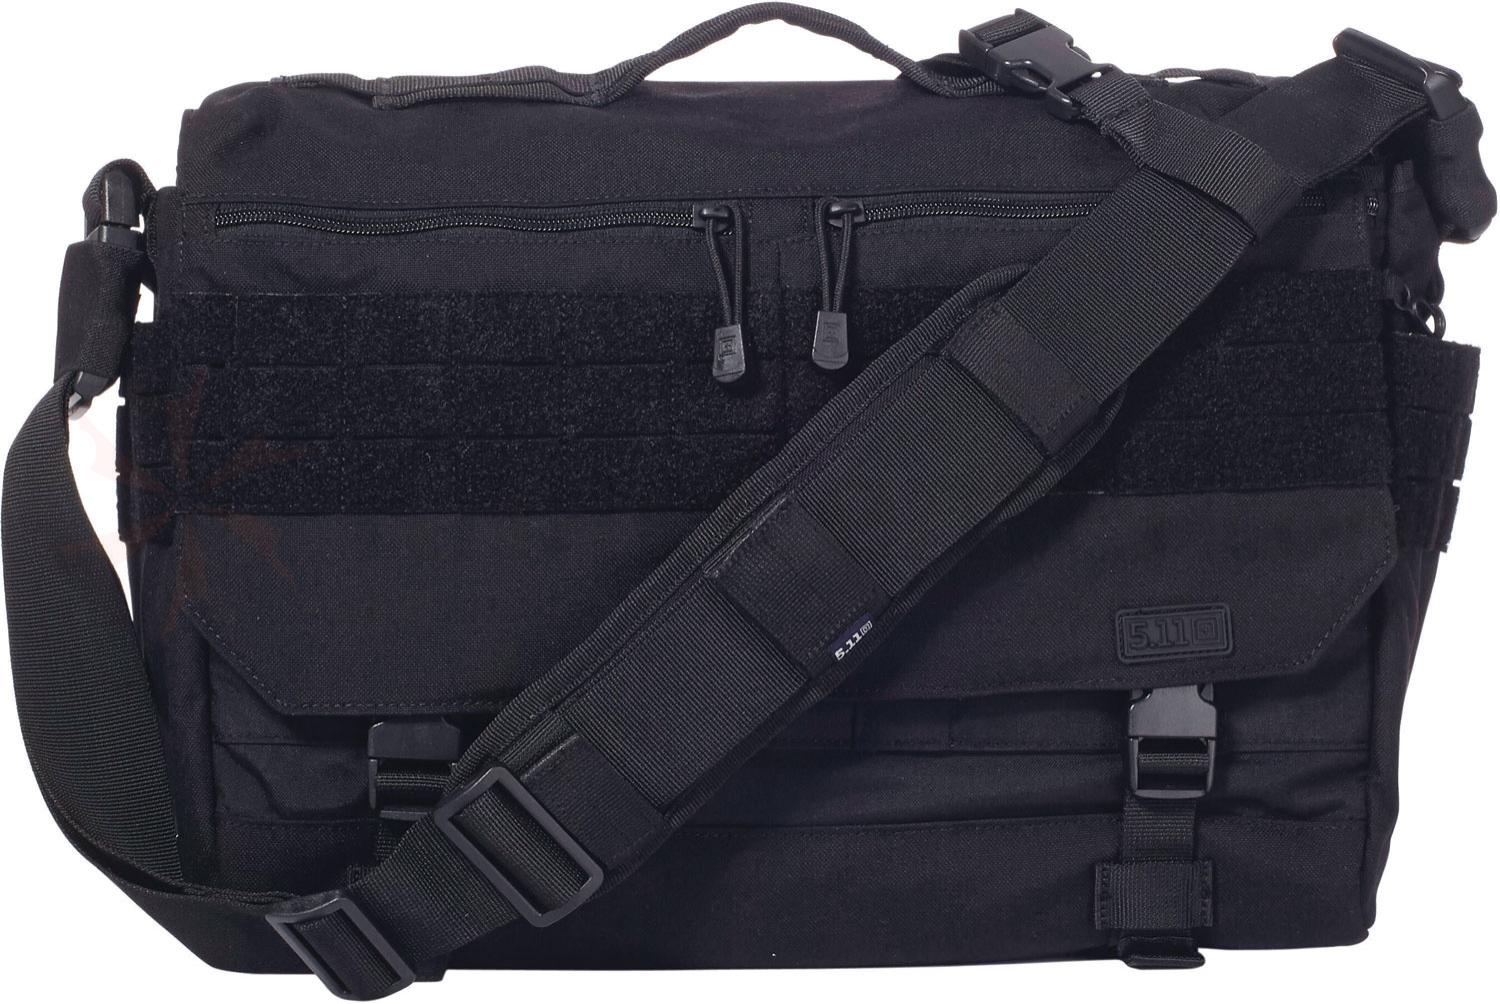 5.11 Tactical Rush Delivery Lima Bag, Black (56177-019)